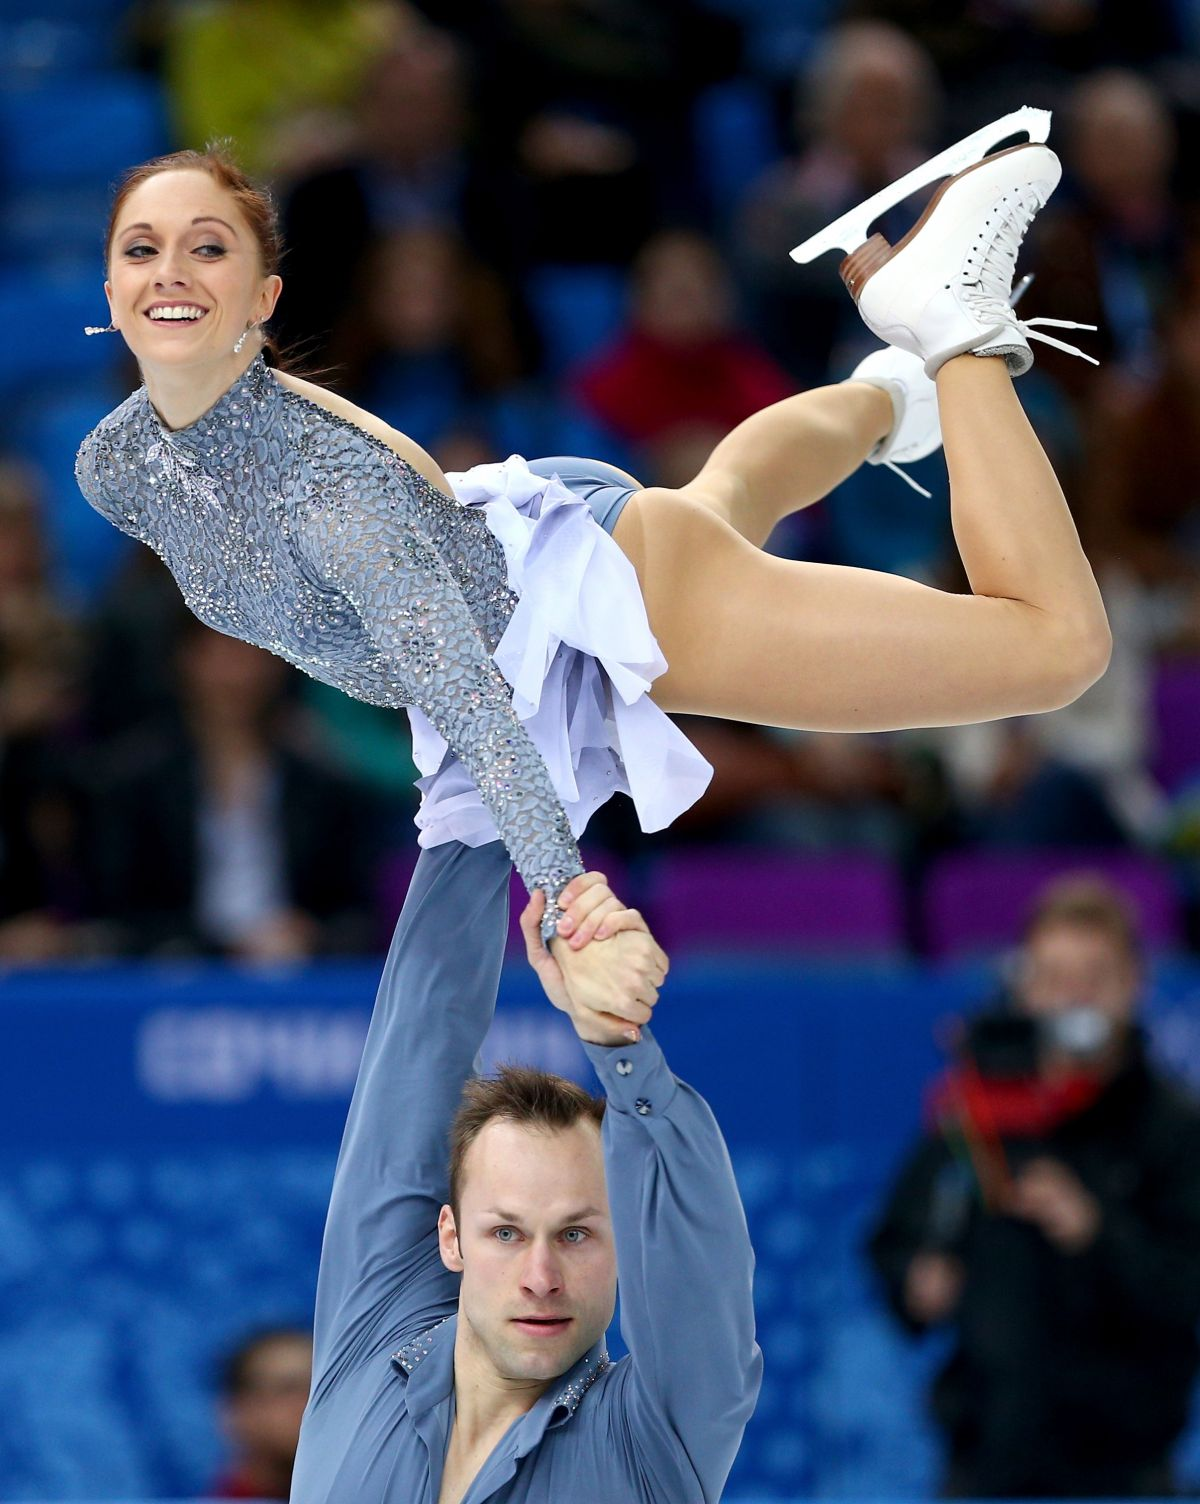 MAYLIN WENDE and Daniel Wende at 2014 Winter Olympics in Sochi